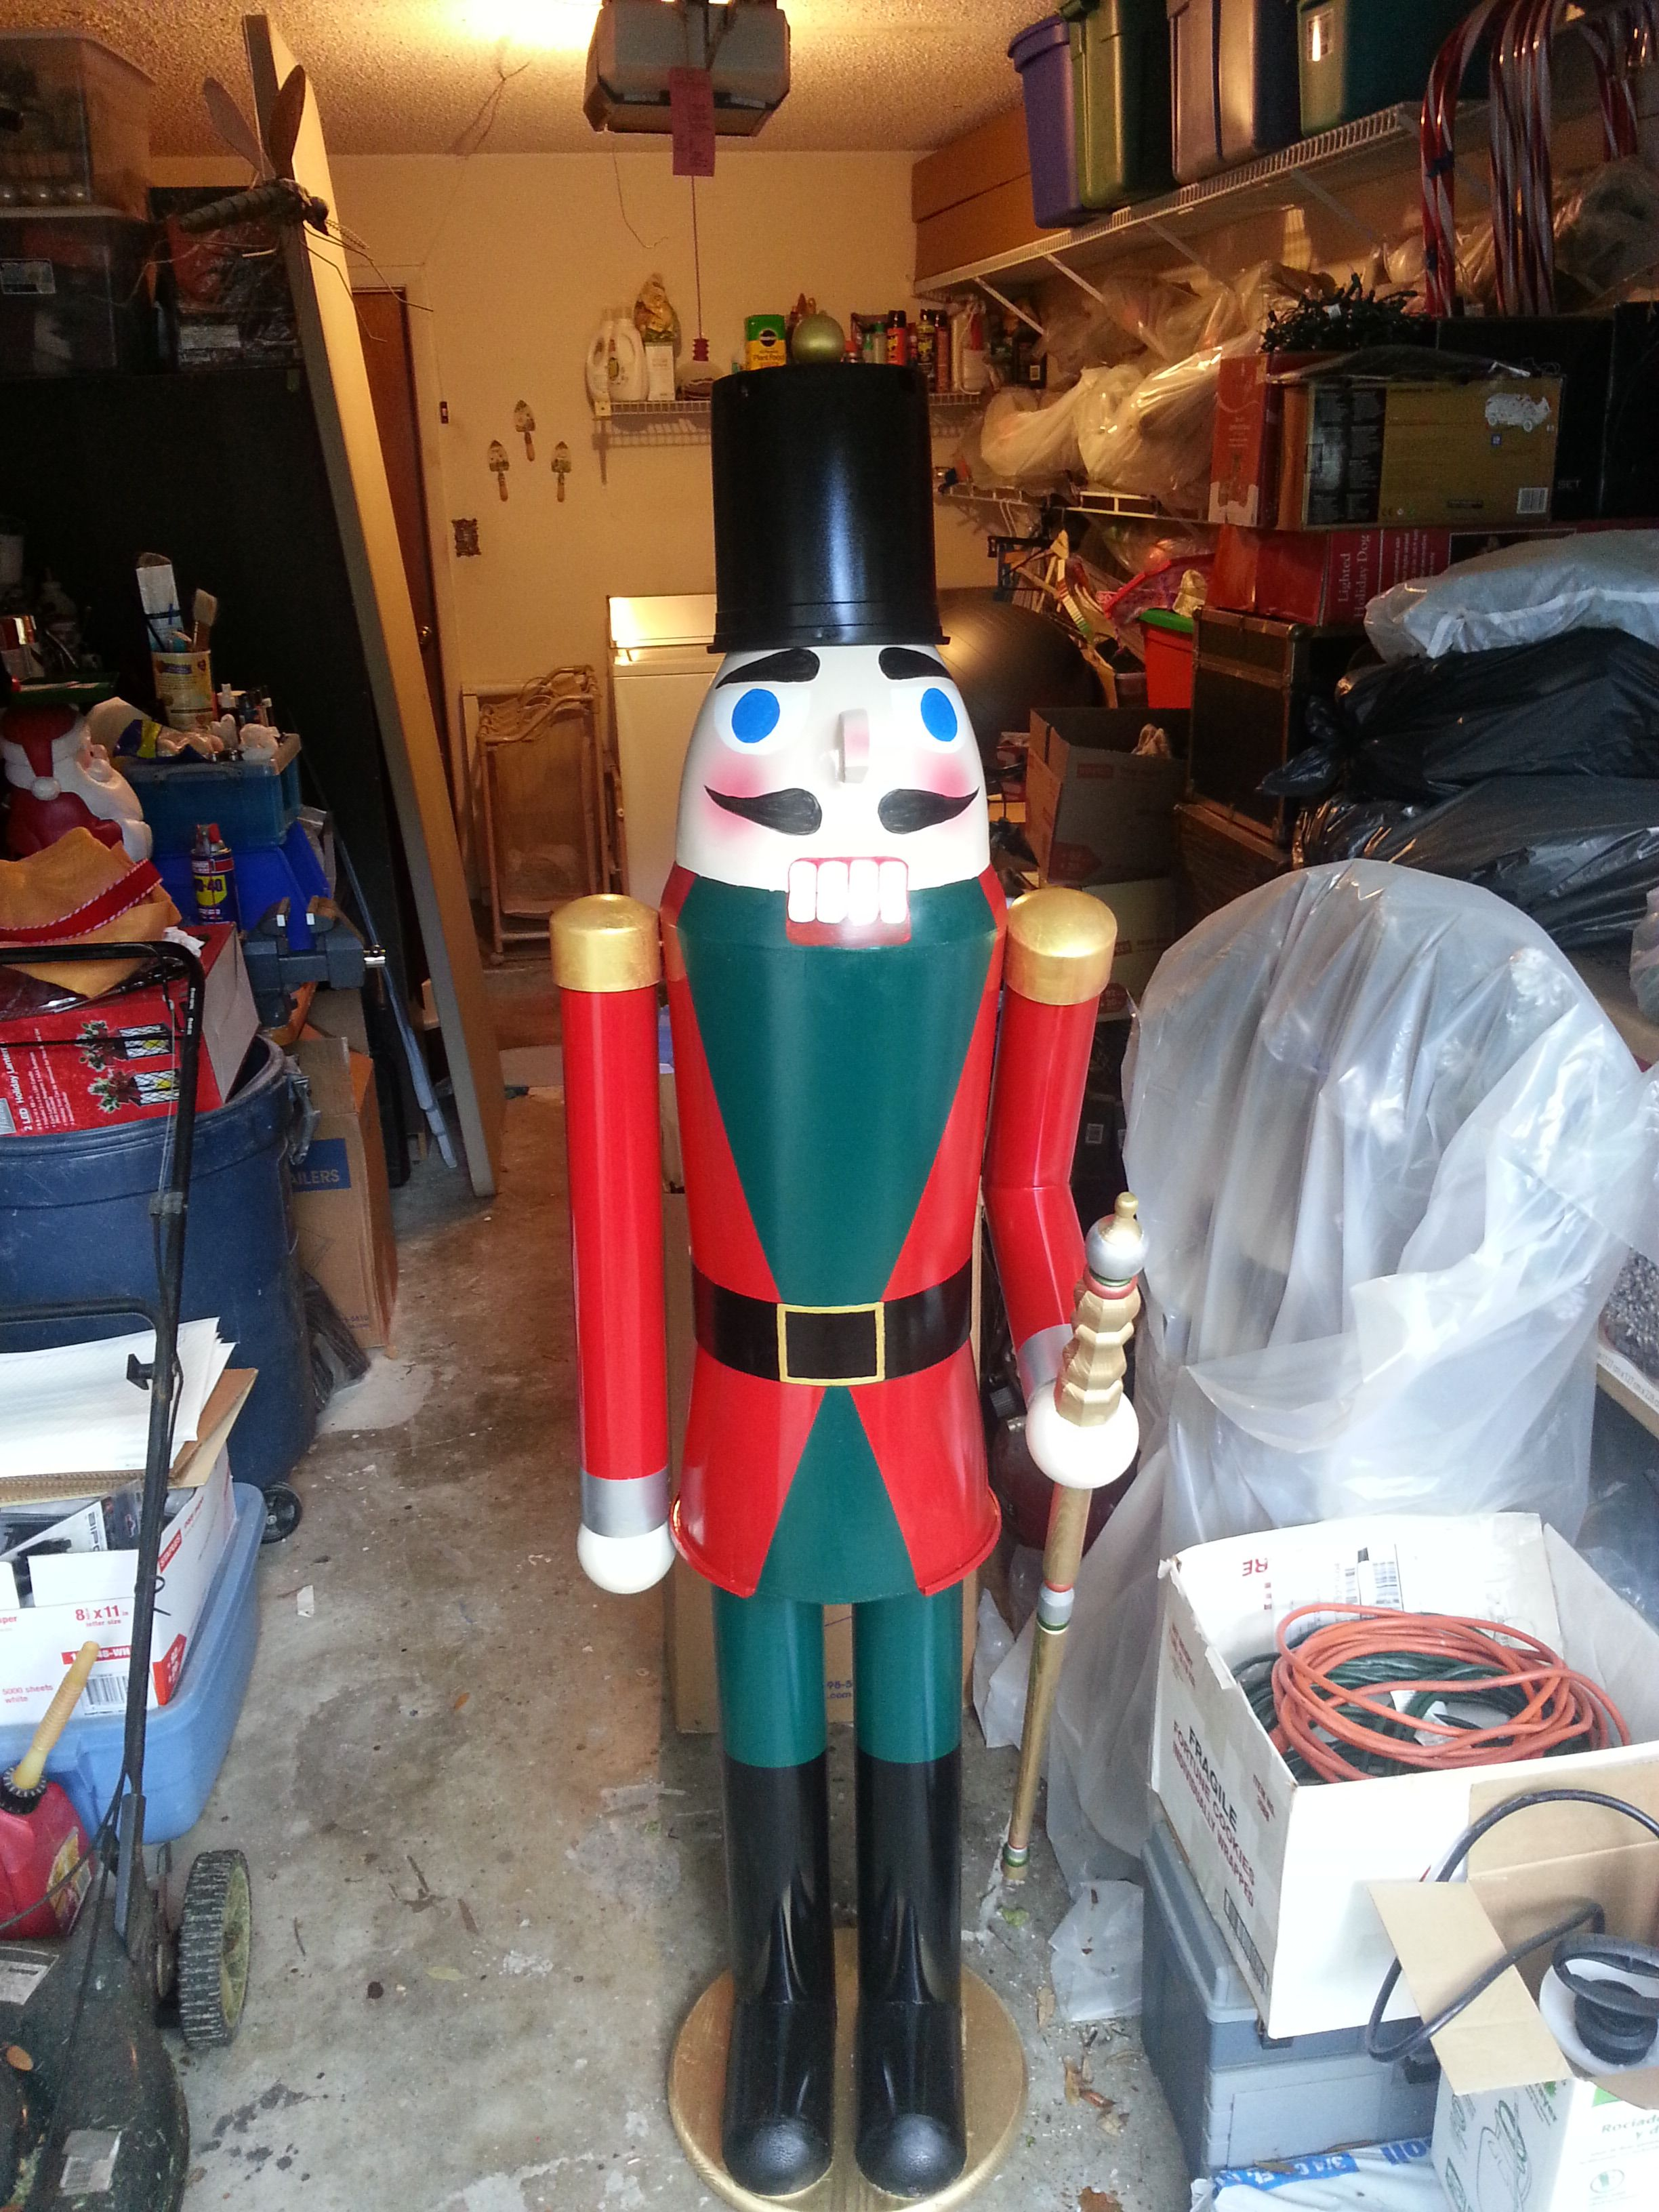 Jps Christmas Concert 2020 Life Size Nutcracker in 2020 | Nutcracker, Outdoor christmas